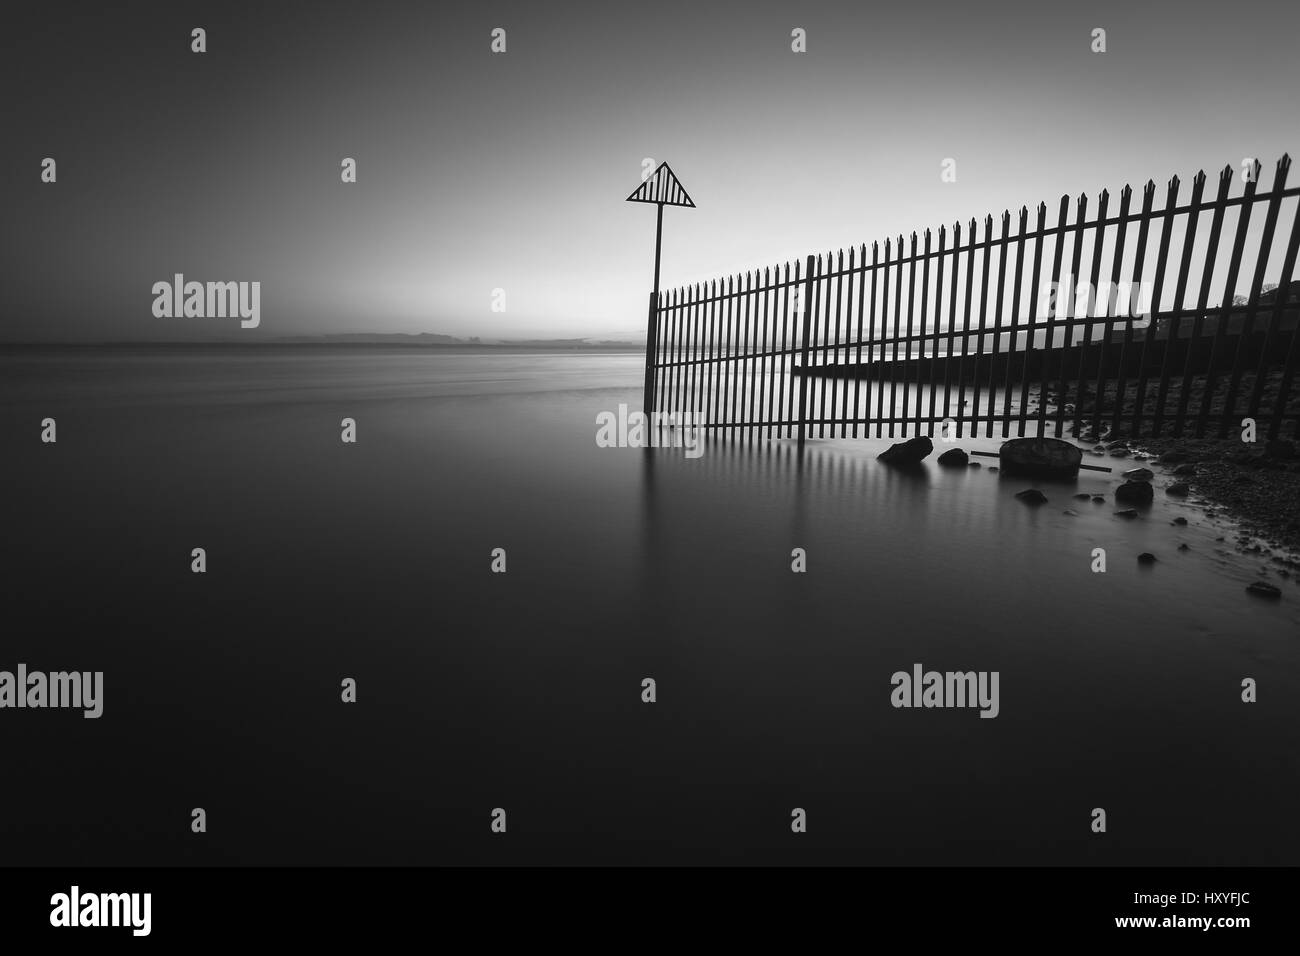 Fence barrier partially submerged in the sea Stock Photo